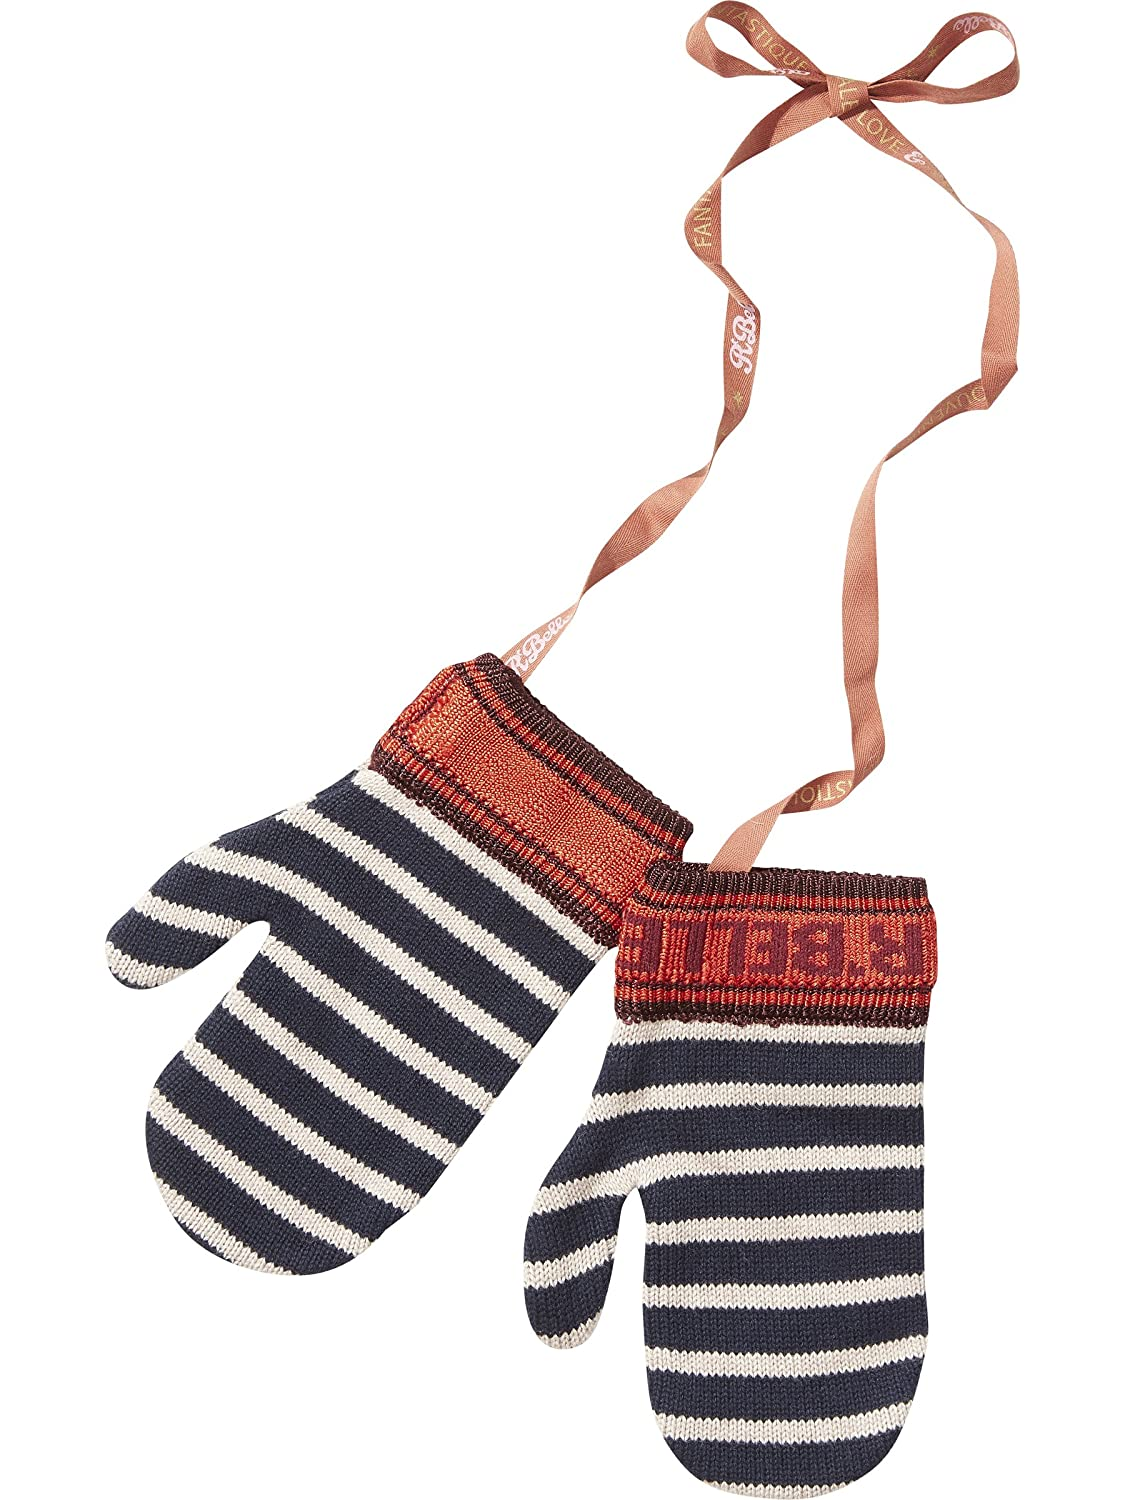 Scotch & Soda Girl's Knitted Stripe Mittens Gloves Scotch & Soda R'Belle 140496